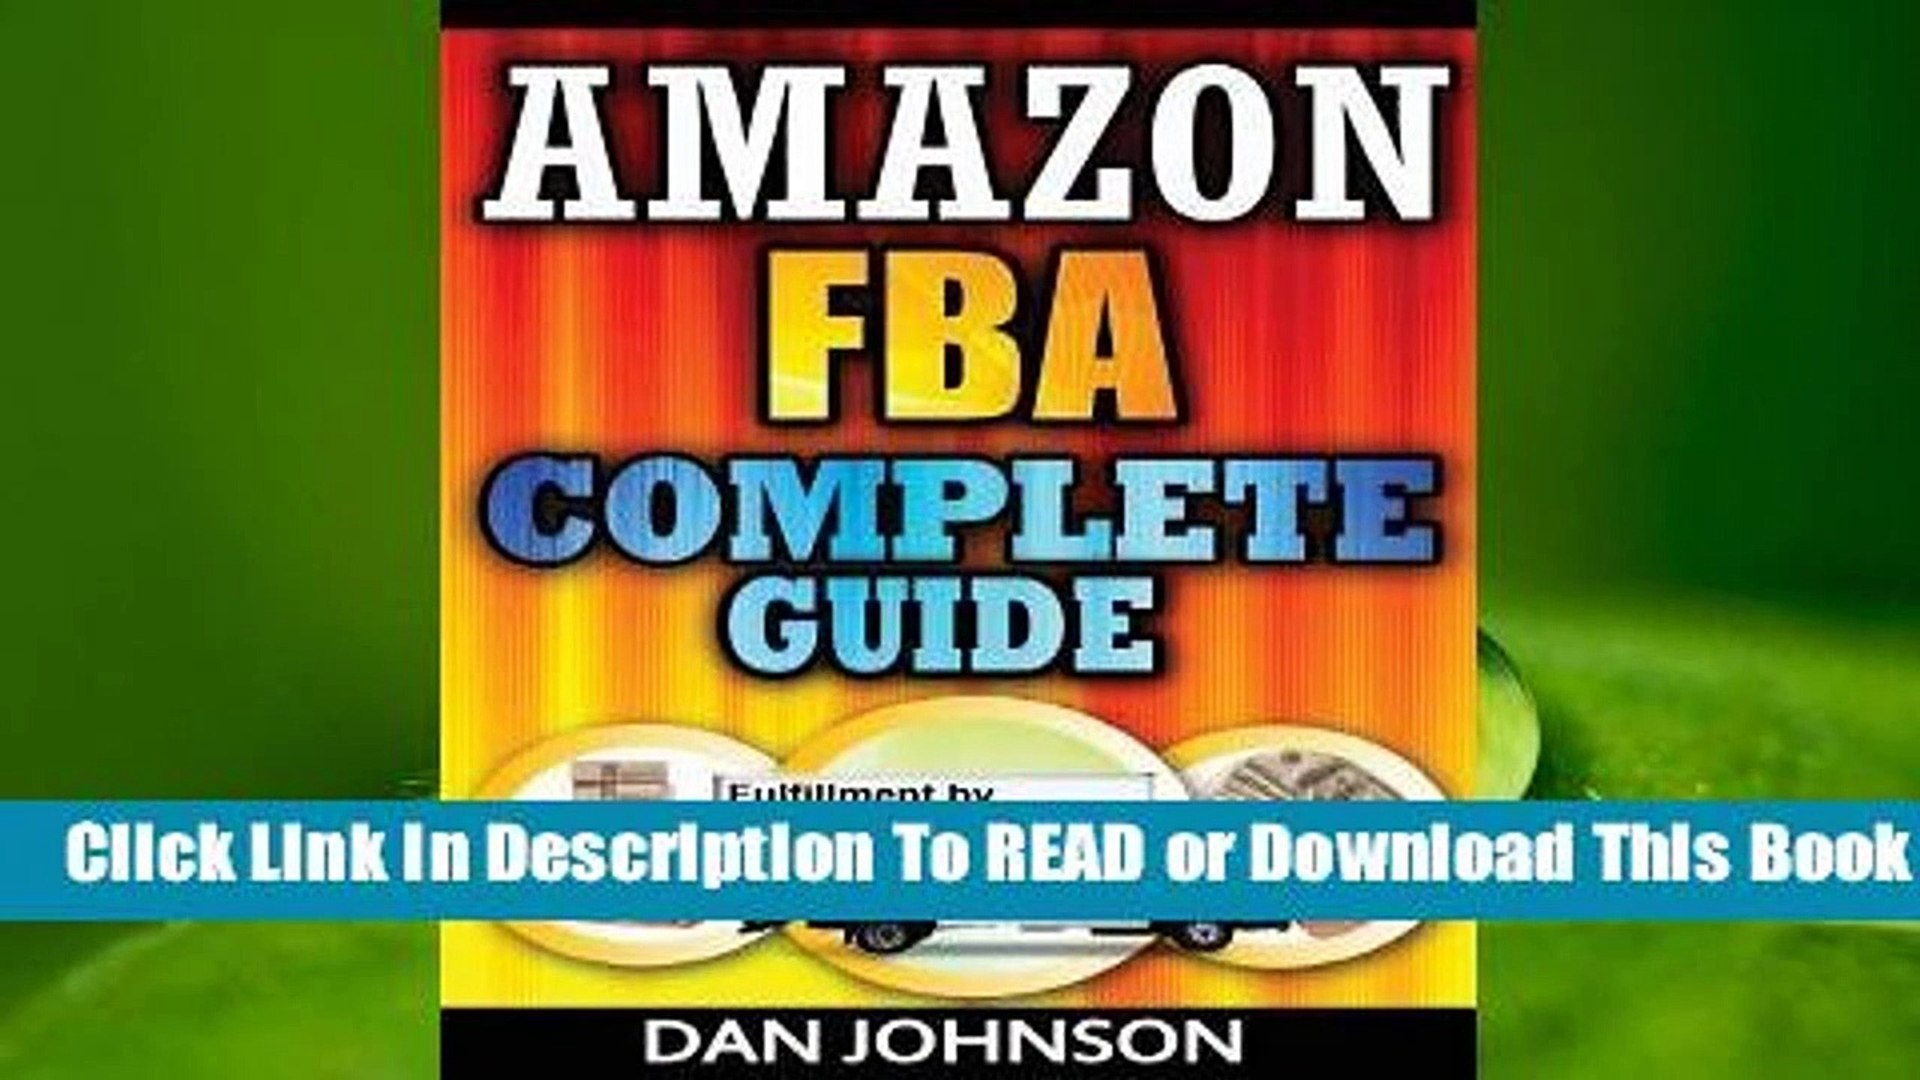 [Read] Amazon Fba: Complete Guide: Make Money Online with Amazon Fba: The Fulfillment by Amazon